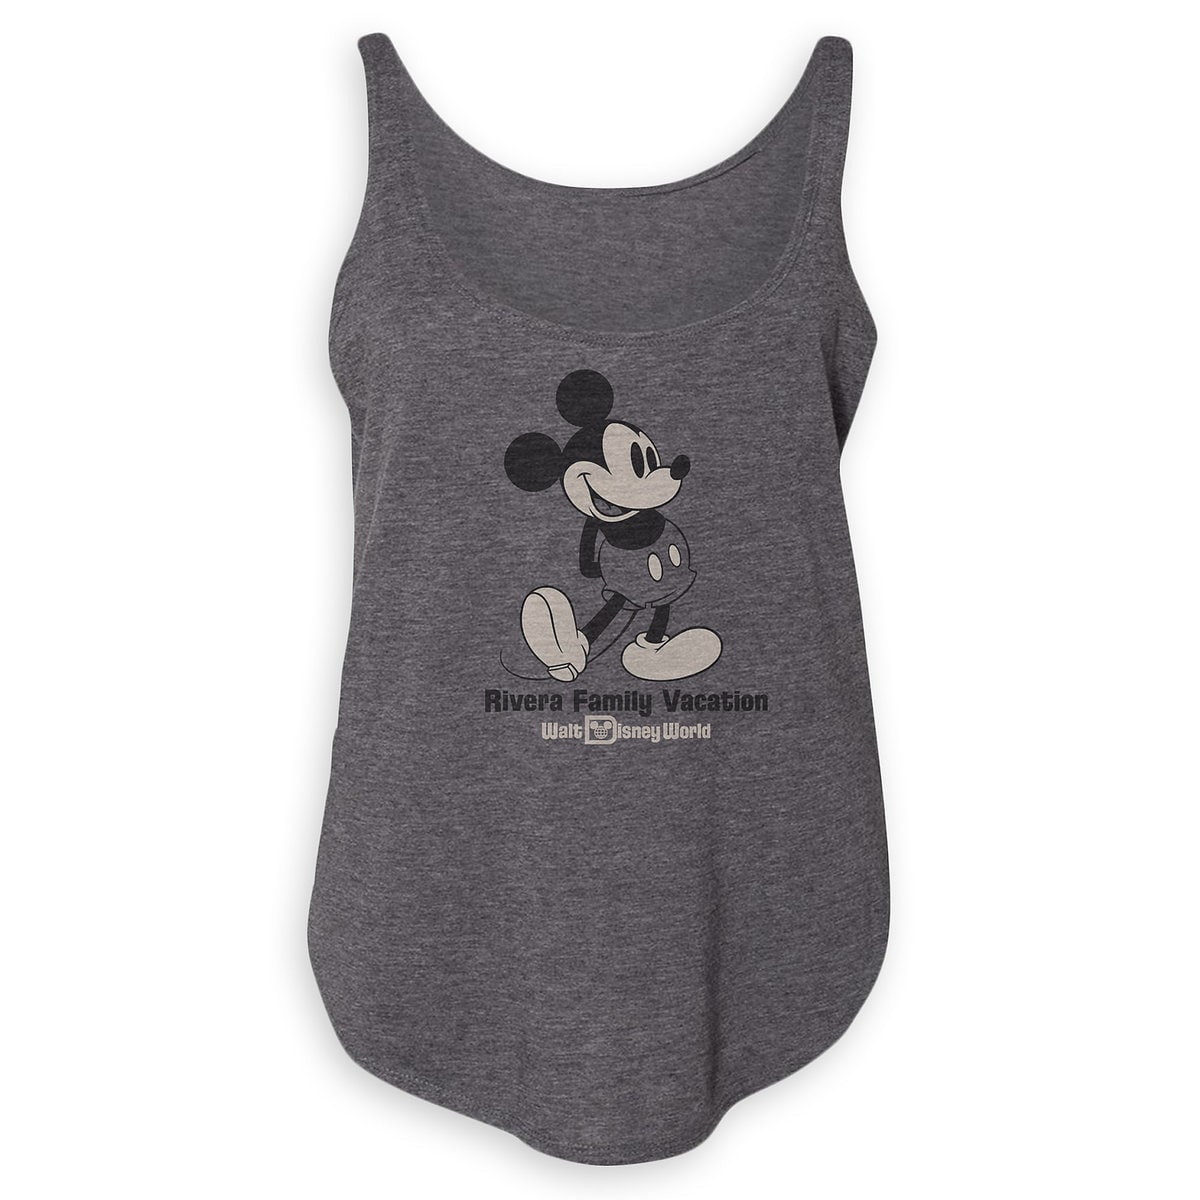 11797d3fe1f663 Product Image of Women s Mickey Mouse Family Vacation Tank Top - Walt Disney  World - Customized